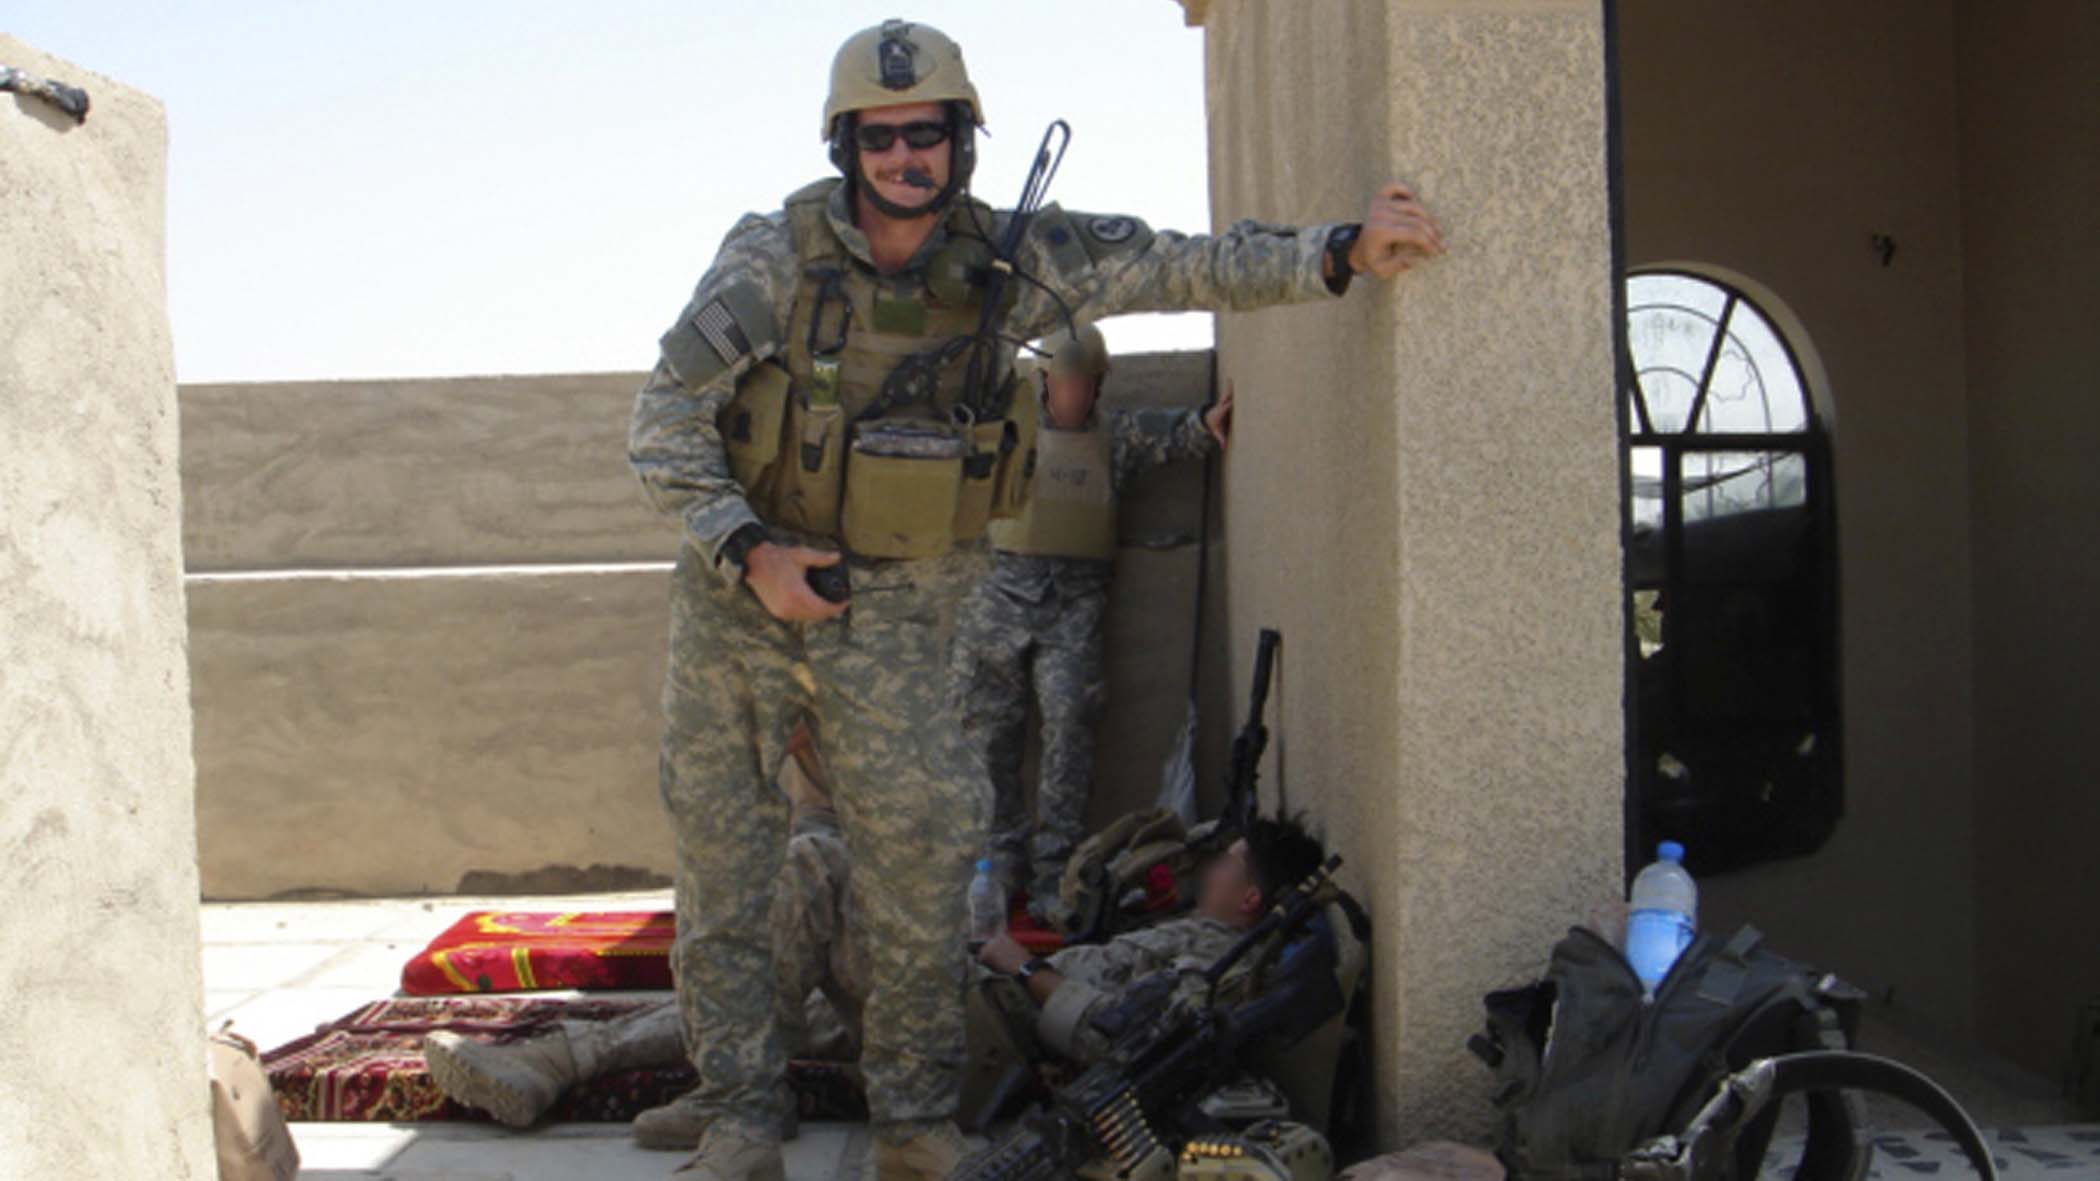 Petty Officer Michael Monsoor in Iraq.